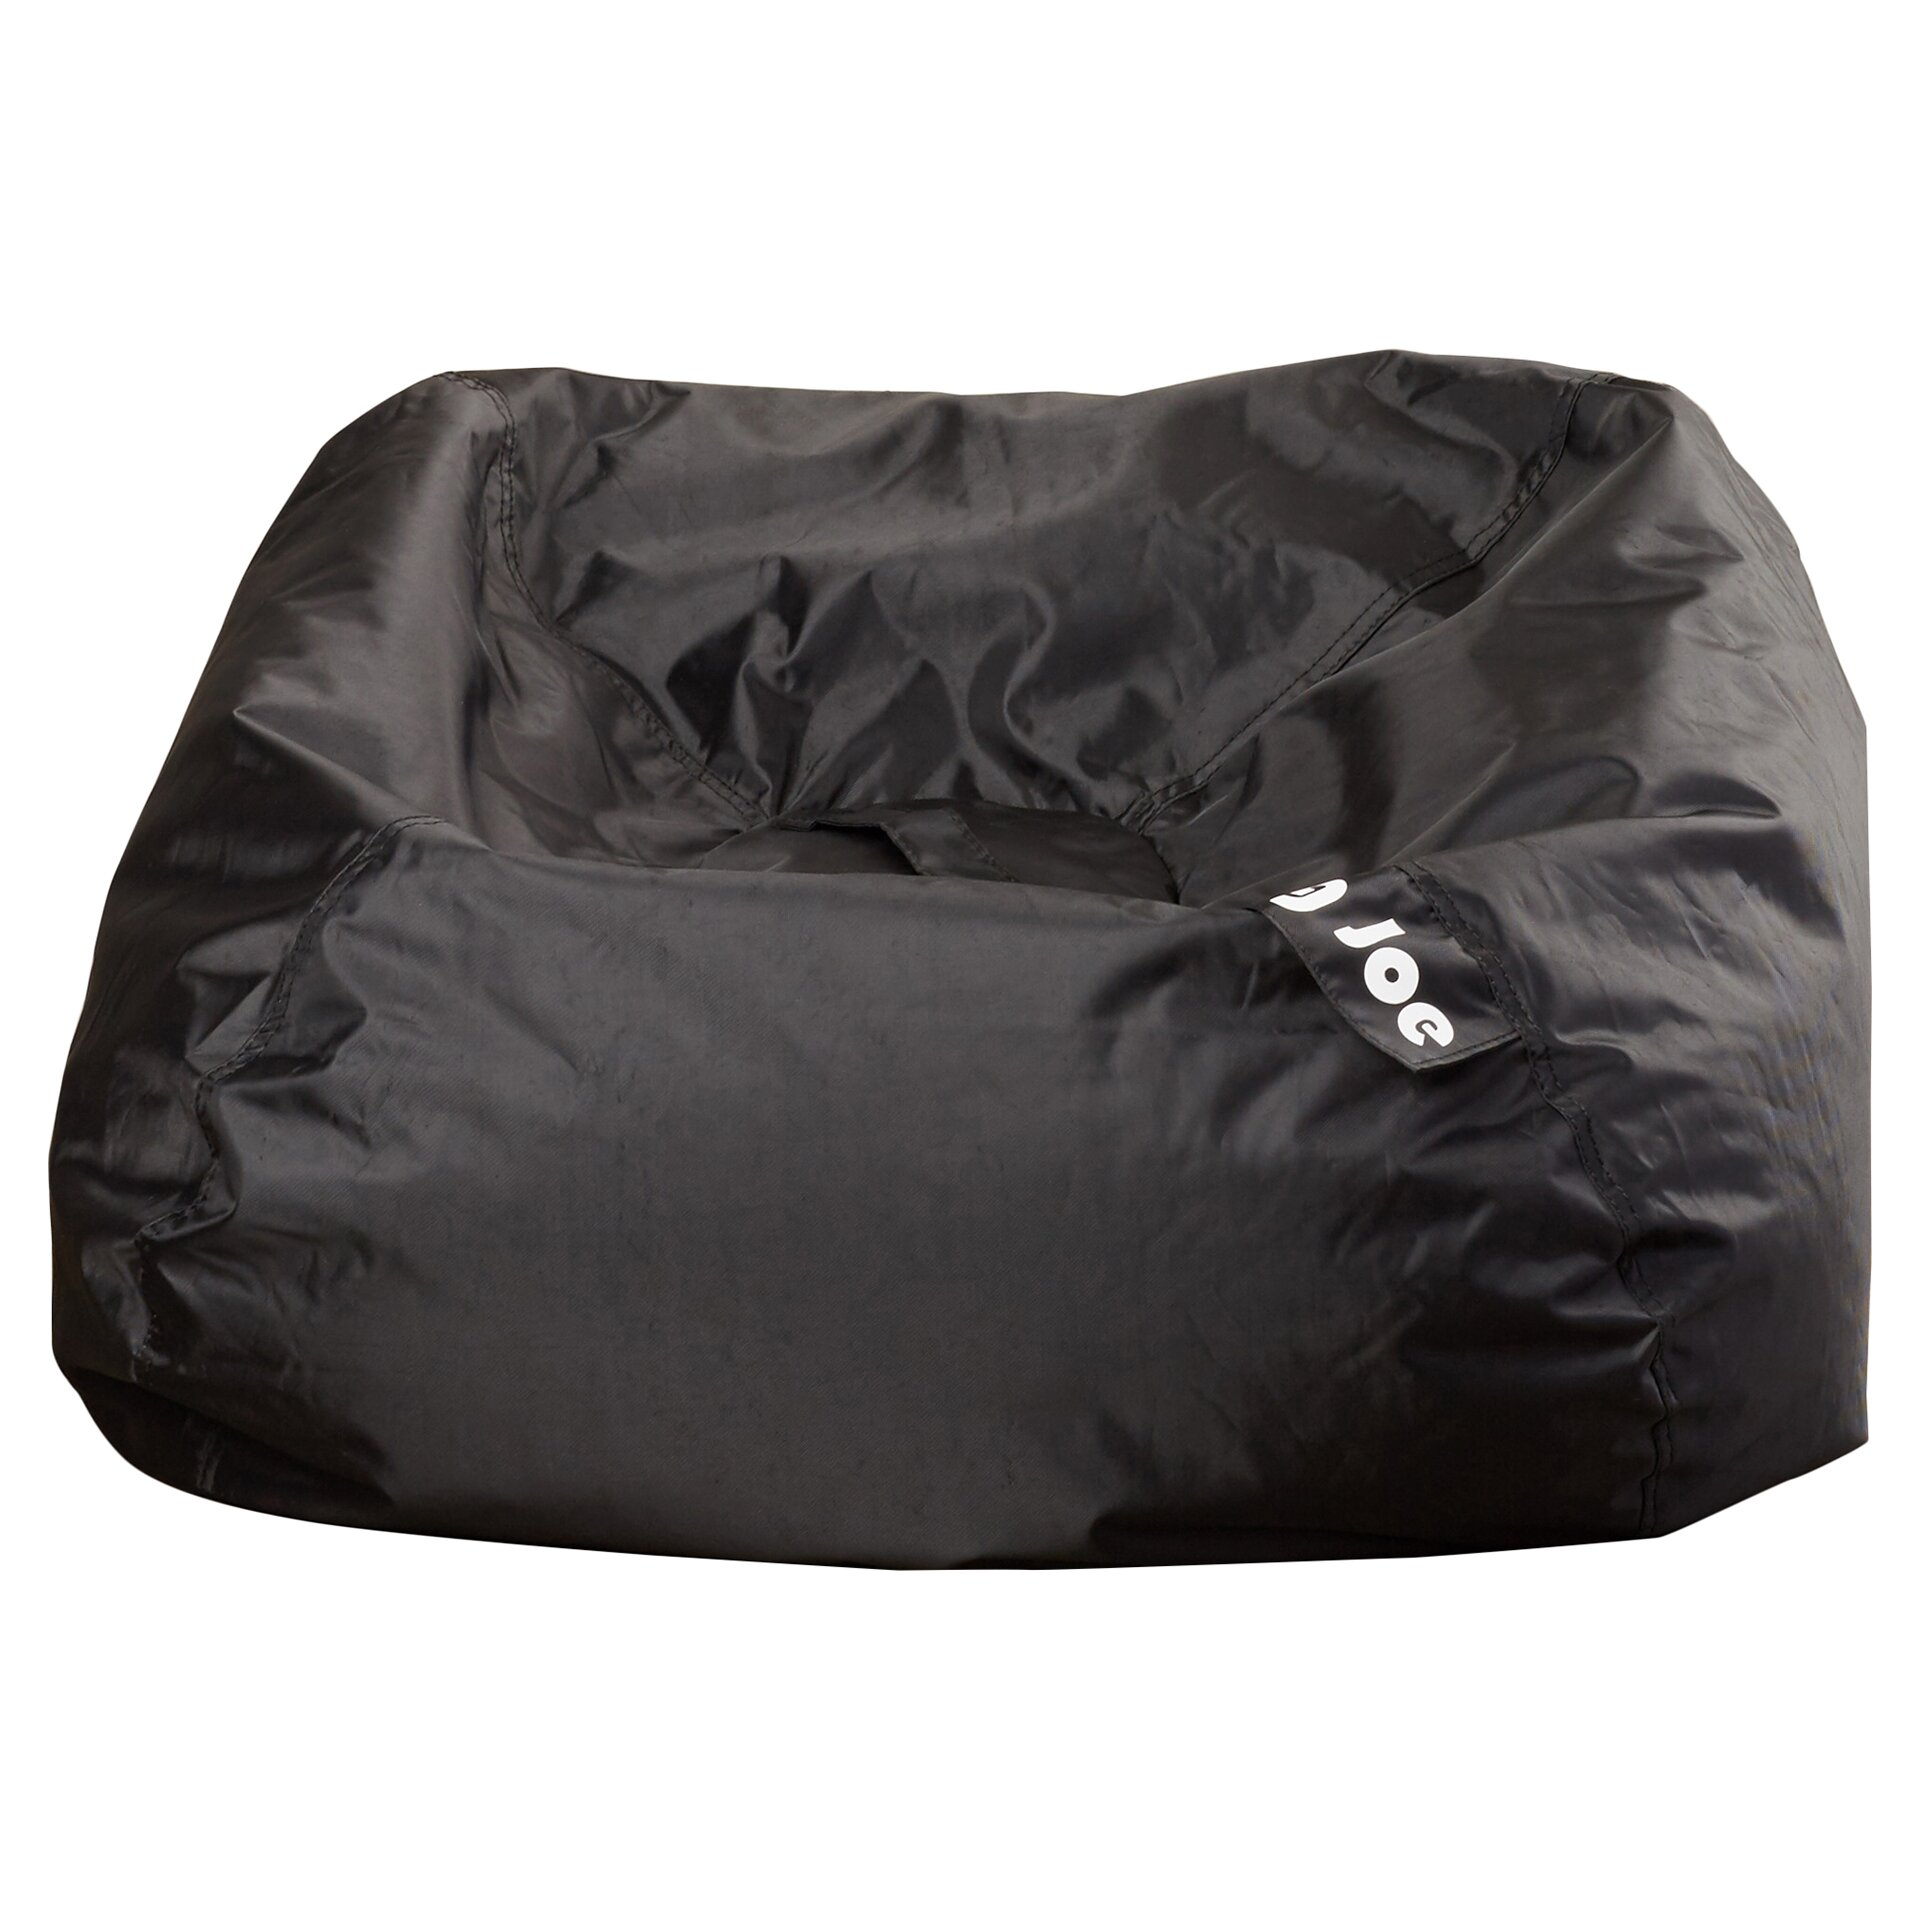 Bean bag chairs price - Bean Bag Chairs Price 12